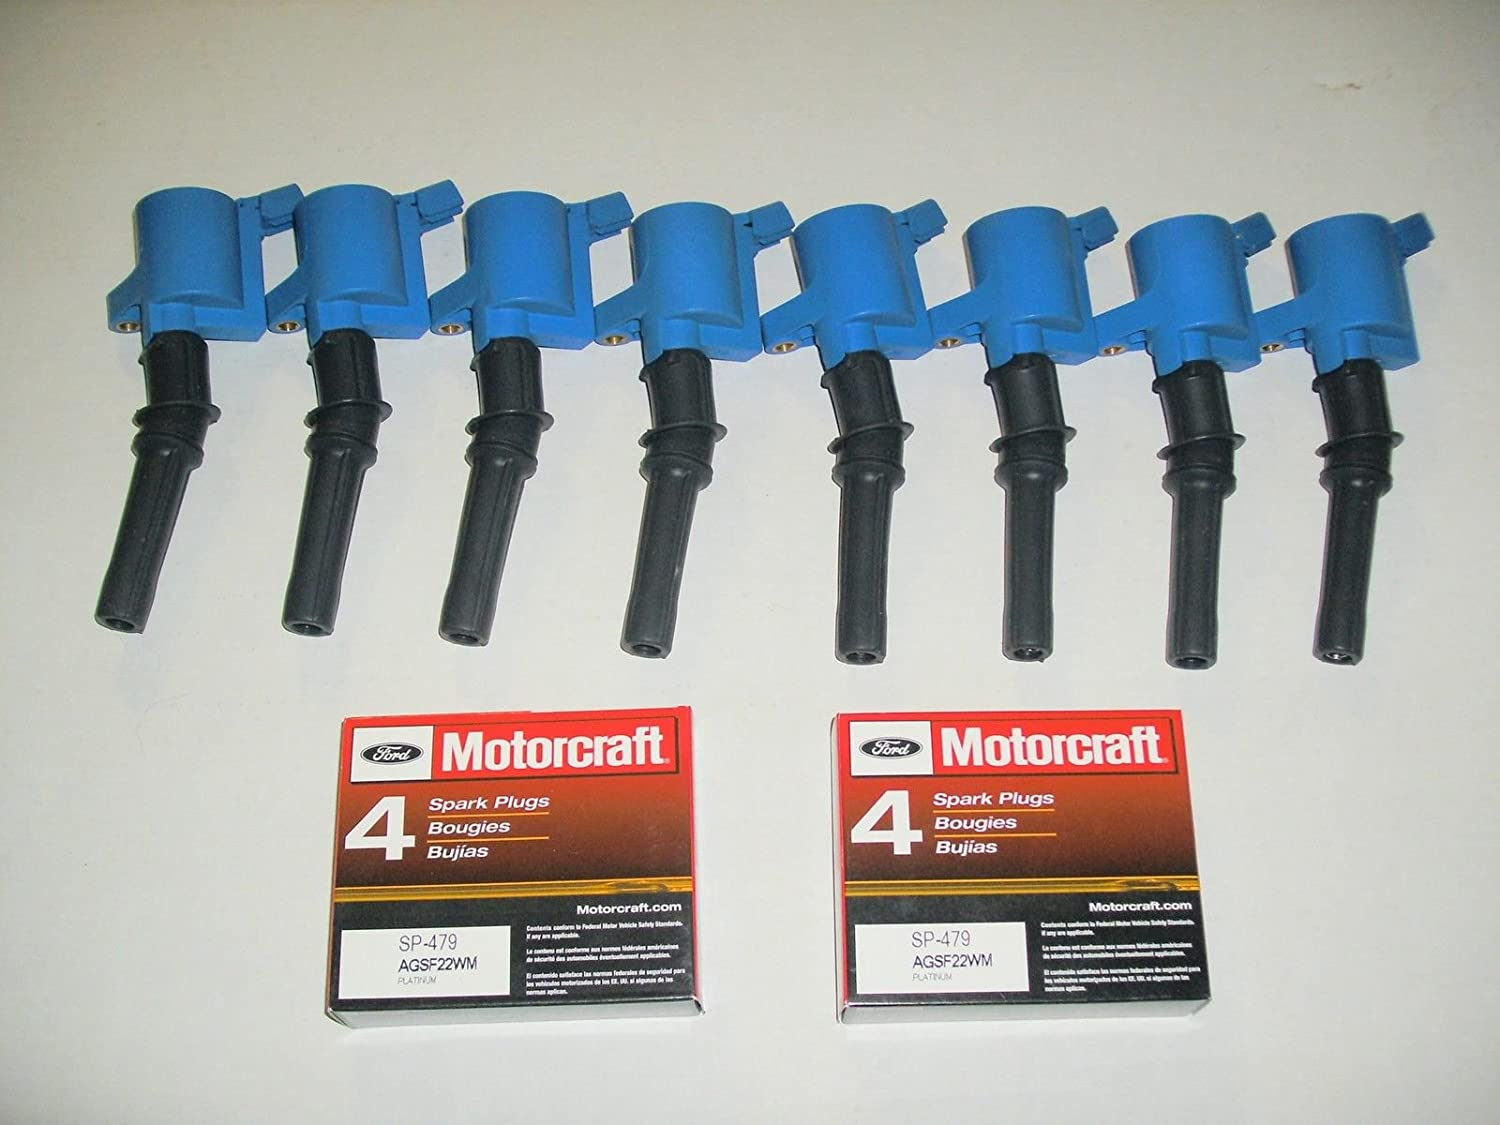 Amazon.com: TPP Set of 8 High Performance Ignition Coil Dg-508 Blue + 8 Motorcraft Spark Plug Sp-479: Automotive